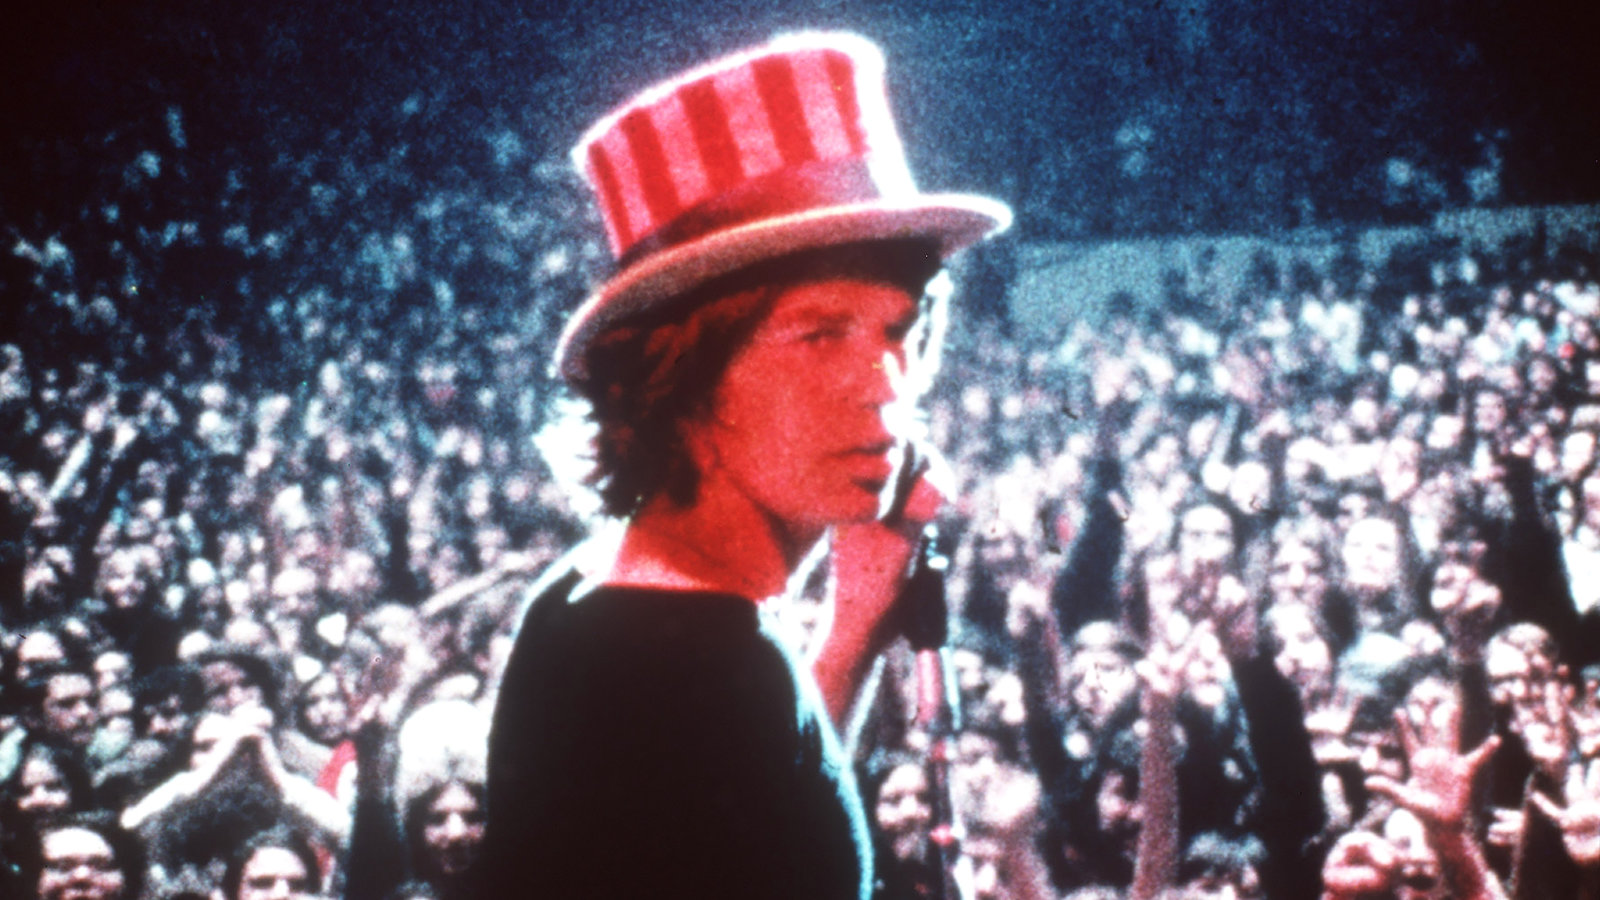 Wearing a stripey hat that resembles the American flag, the singer Mick Jagger turns to face a camera. In his hand is a microphone, and behind him is a huge crowd. The image is from Gimme Shelter, a film you can choose to see in DocHouse's RE:DOX strand.